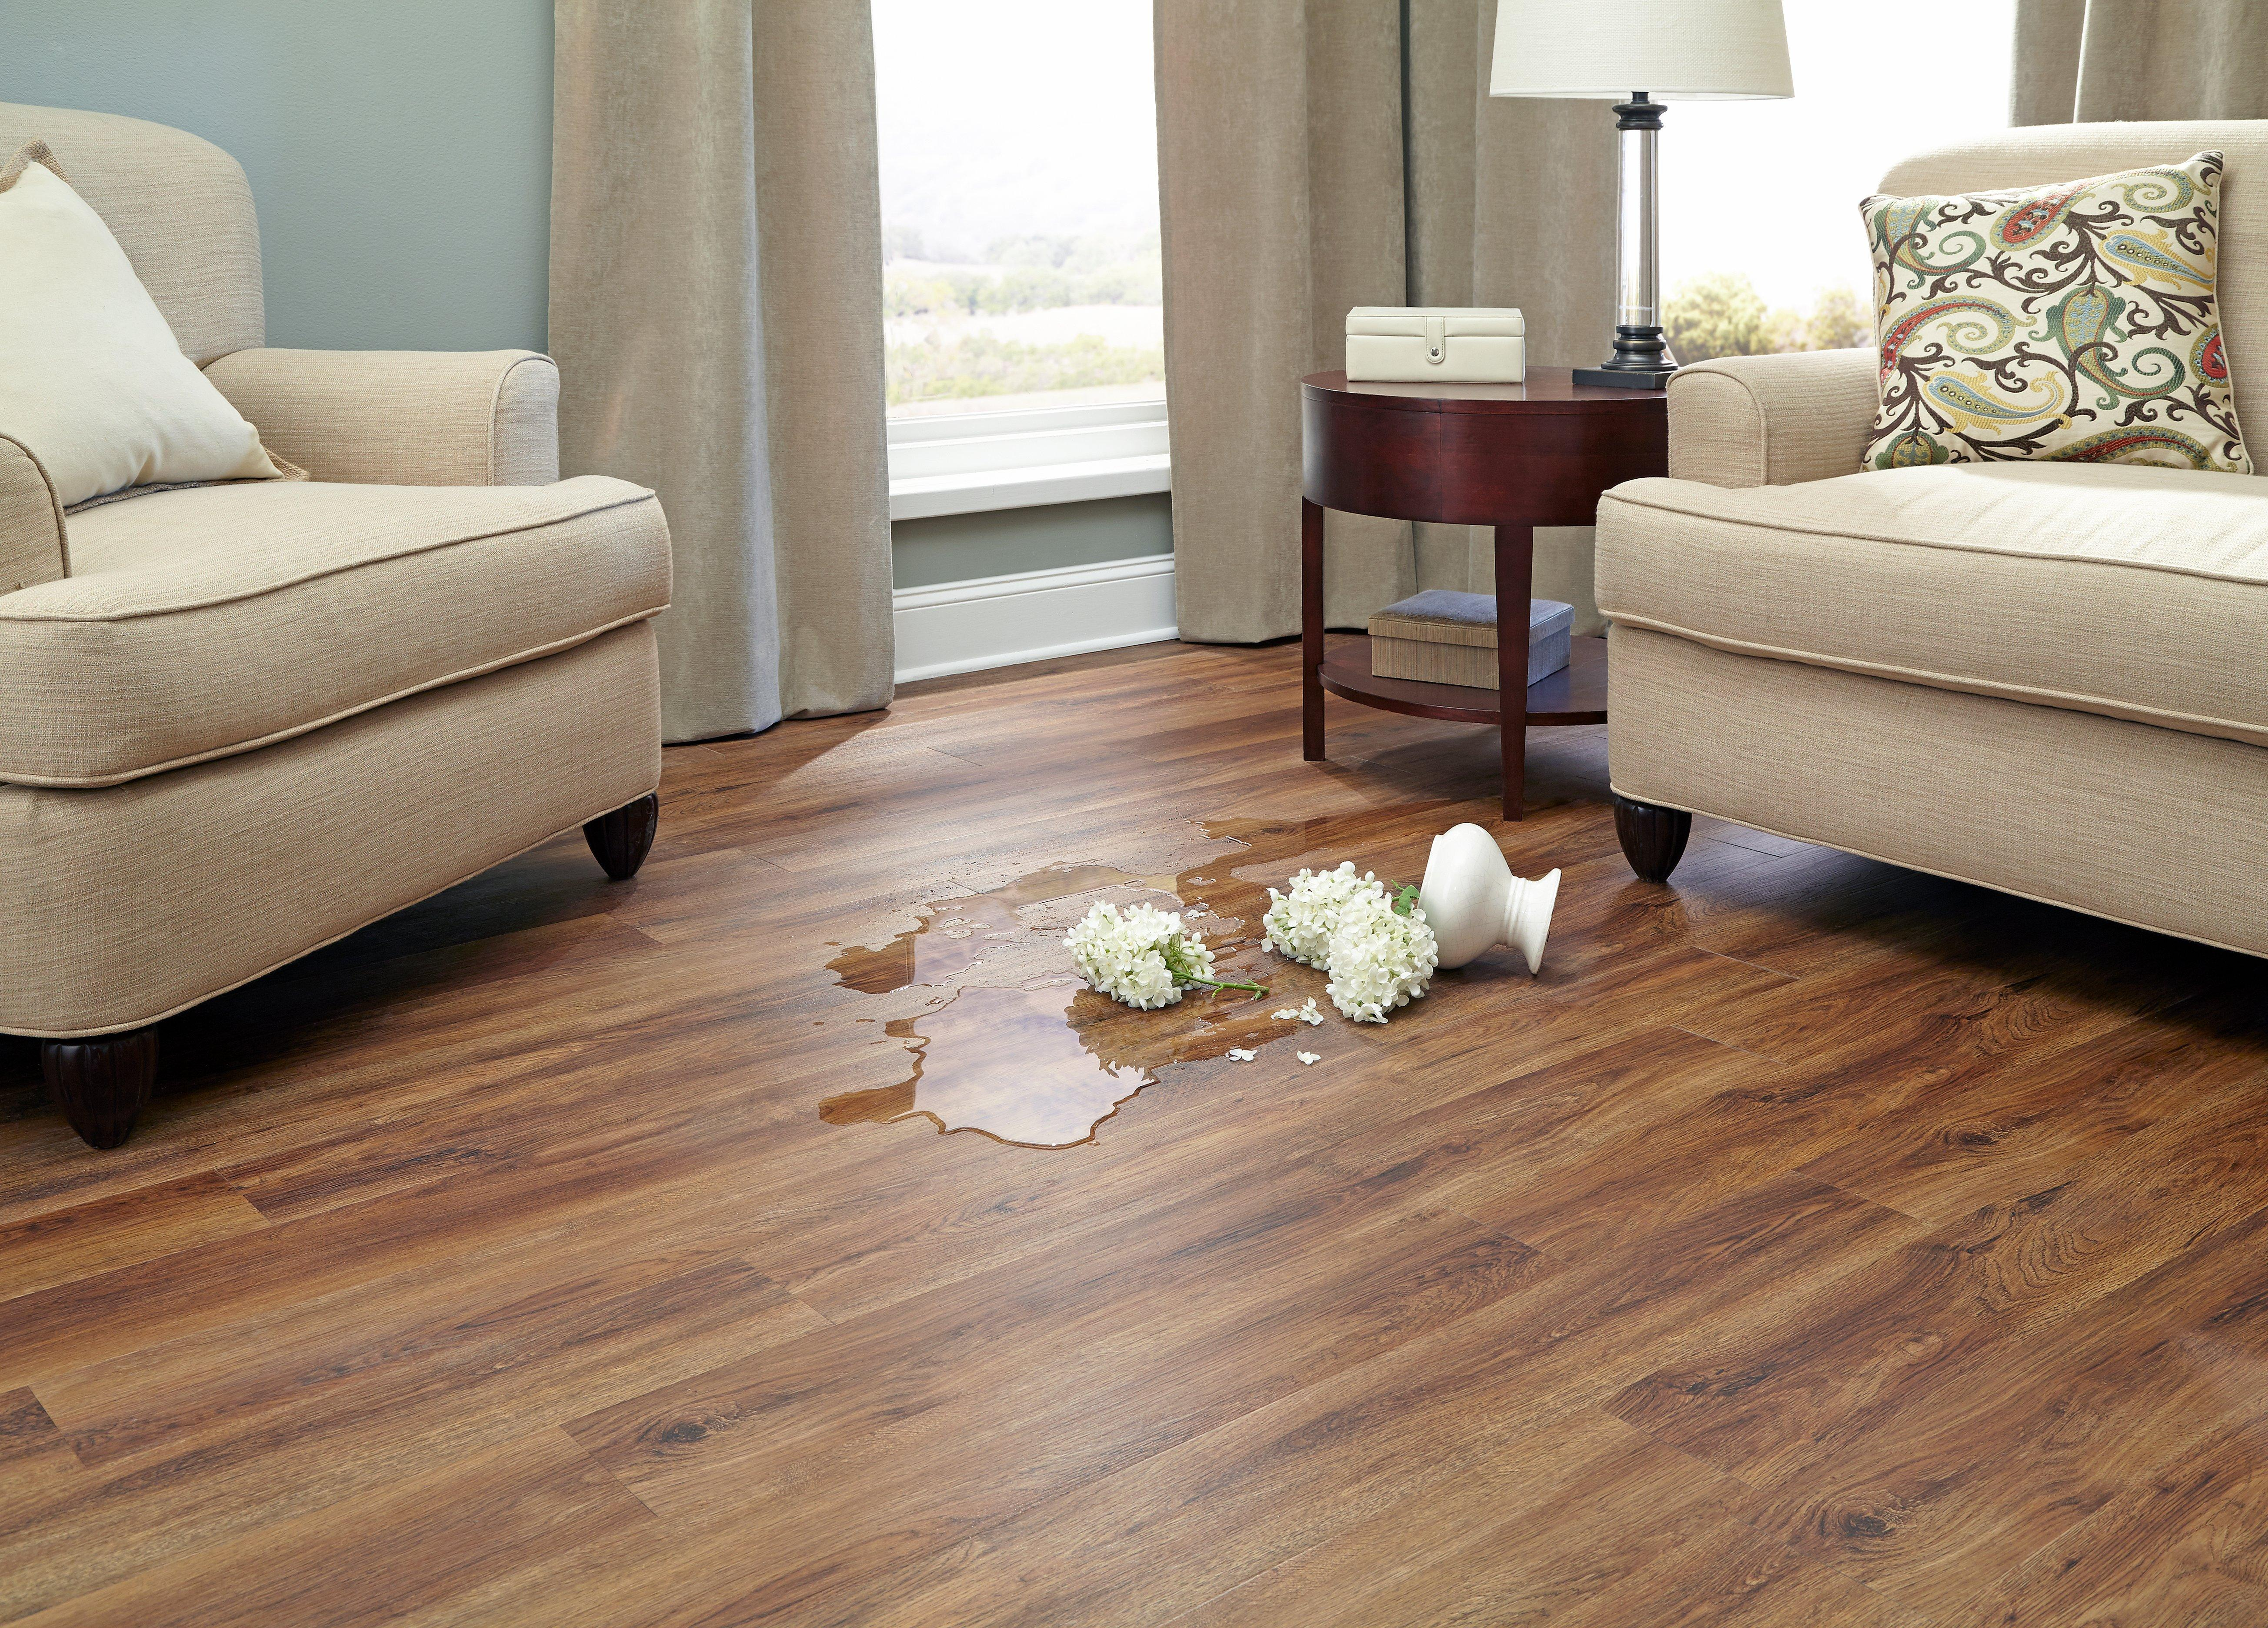 laminate flooring kitchen waterproof vinyl offering additional benefits now there is laminate option for every room in the house including kitchens mudrooms basements and even full bathrooms top exclusive water resistant waterproof floors